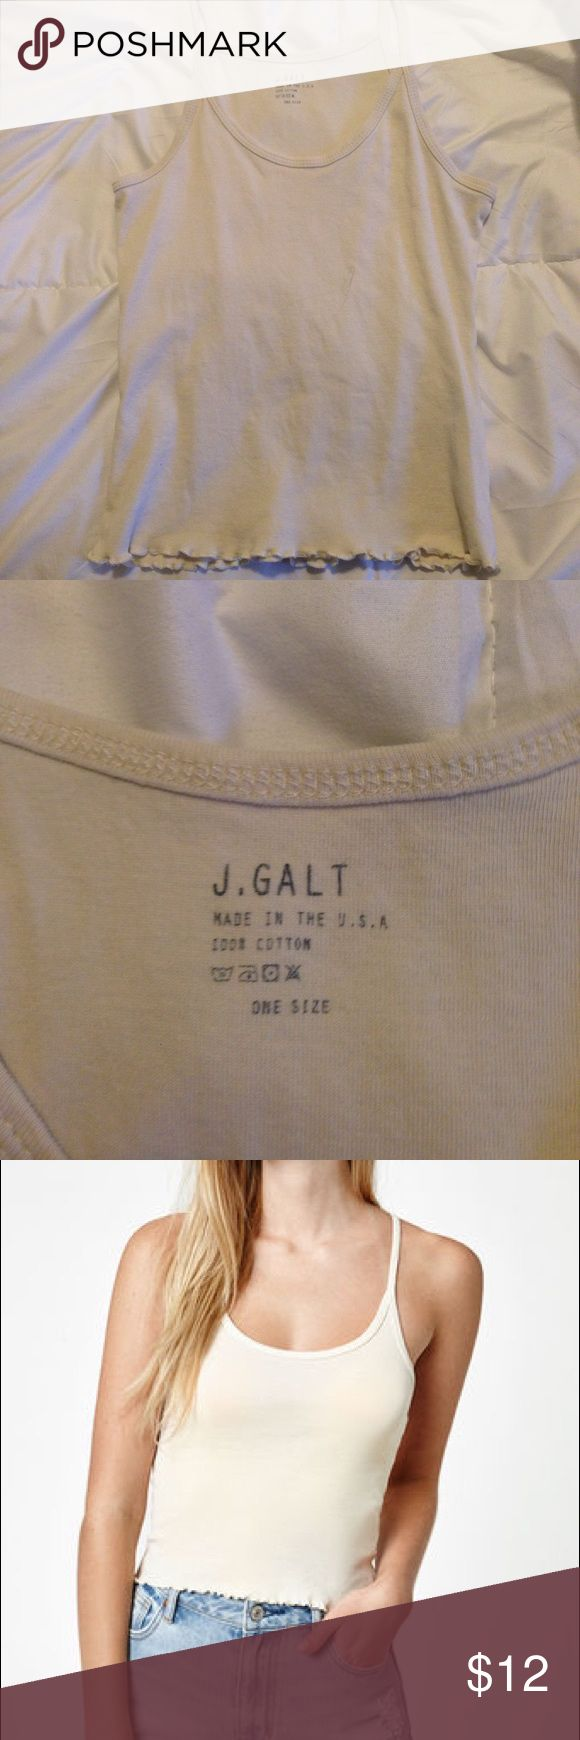 Brandi Melville Cami Top Pastel yellow cami top I purchased from Pacsun. Practically new, Worn once. One size.  Why does the tag say J. Galt? J. Galt is the same company as Brandi Melville. Brandy Melville Tops Tank Tops